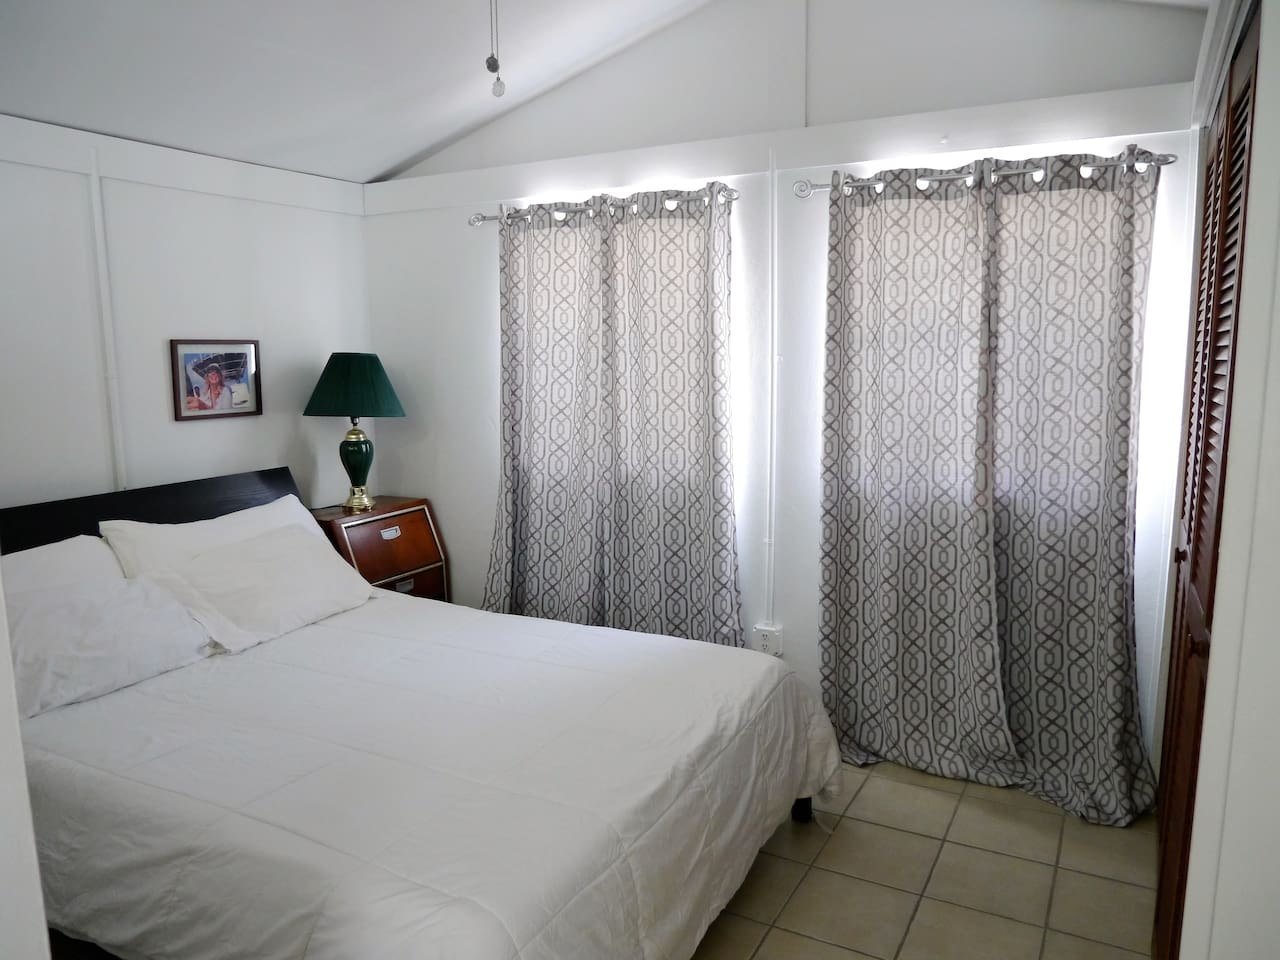 Large double windows feature blinds and heavy drapes for privacy.